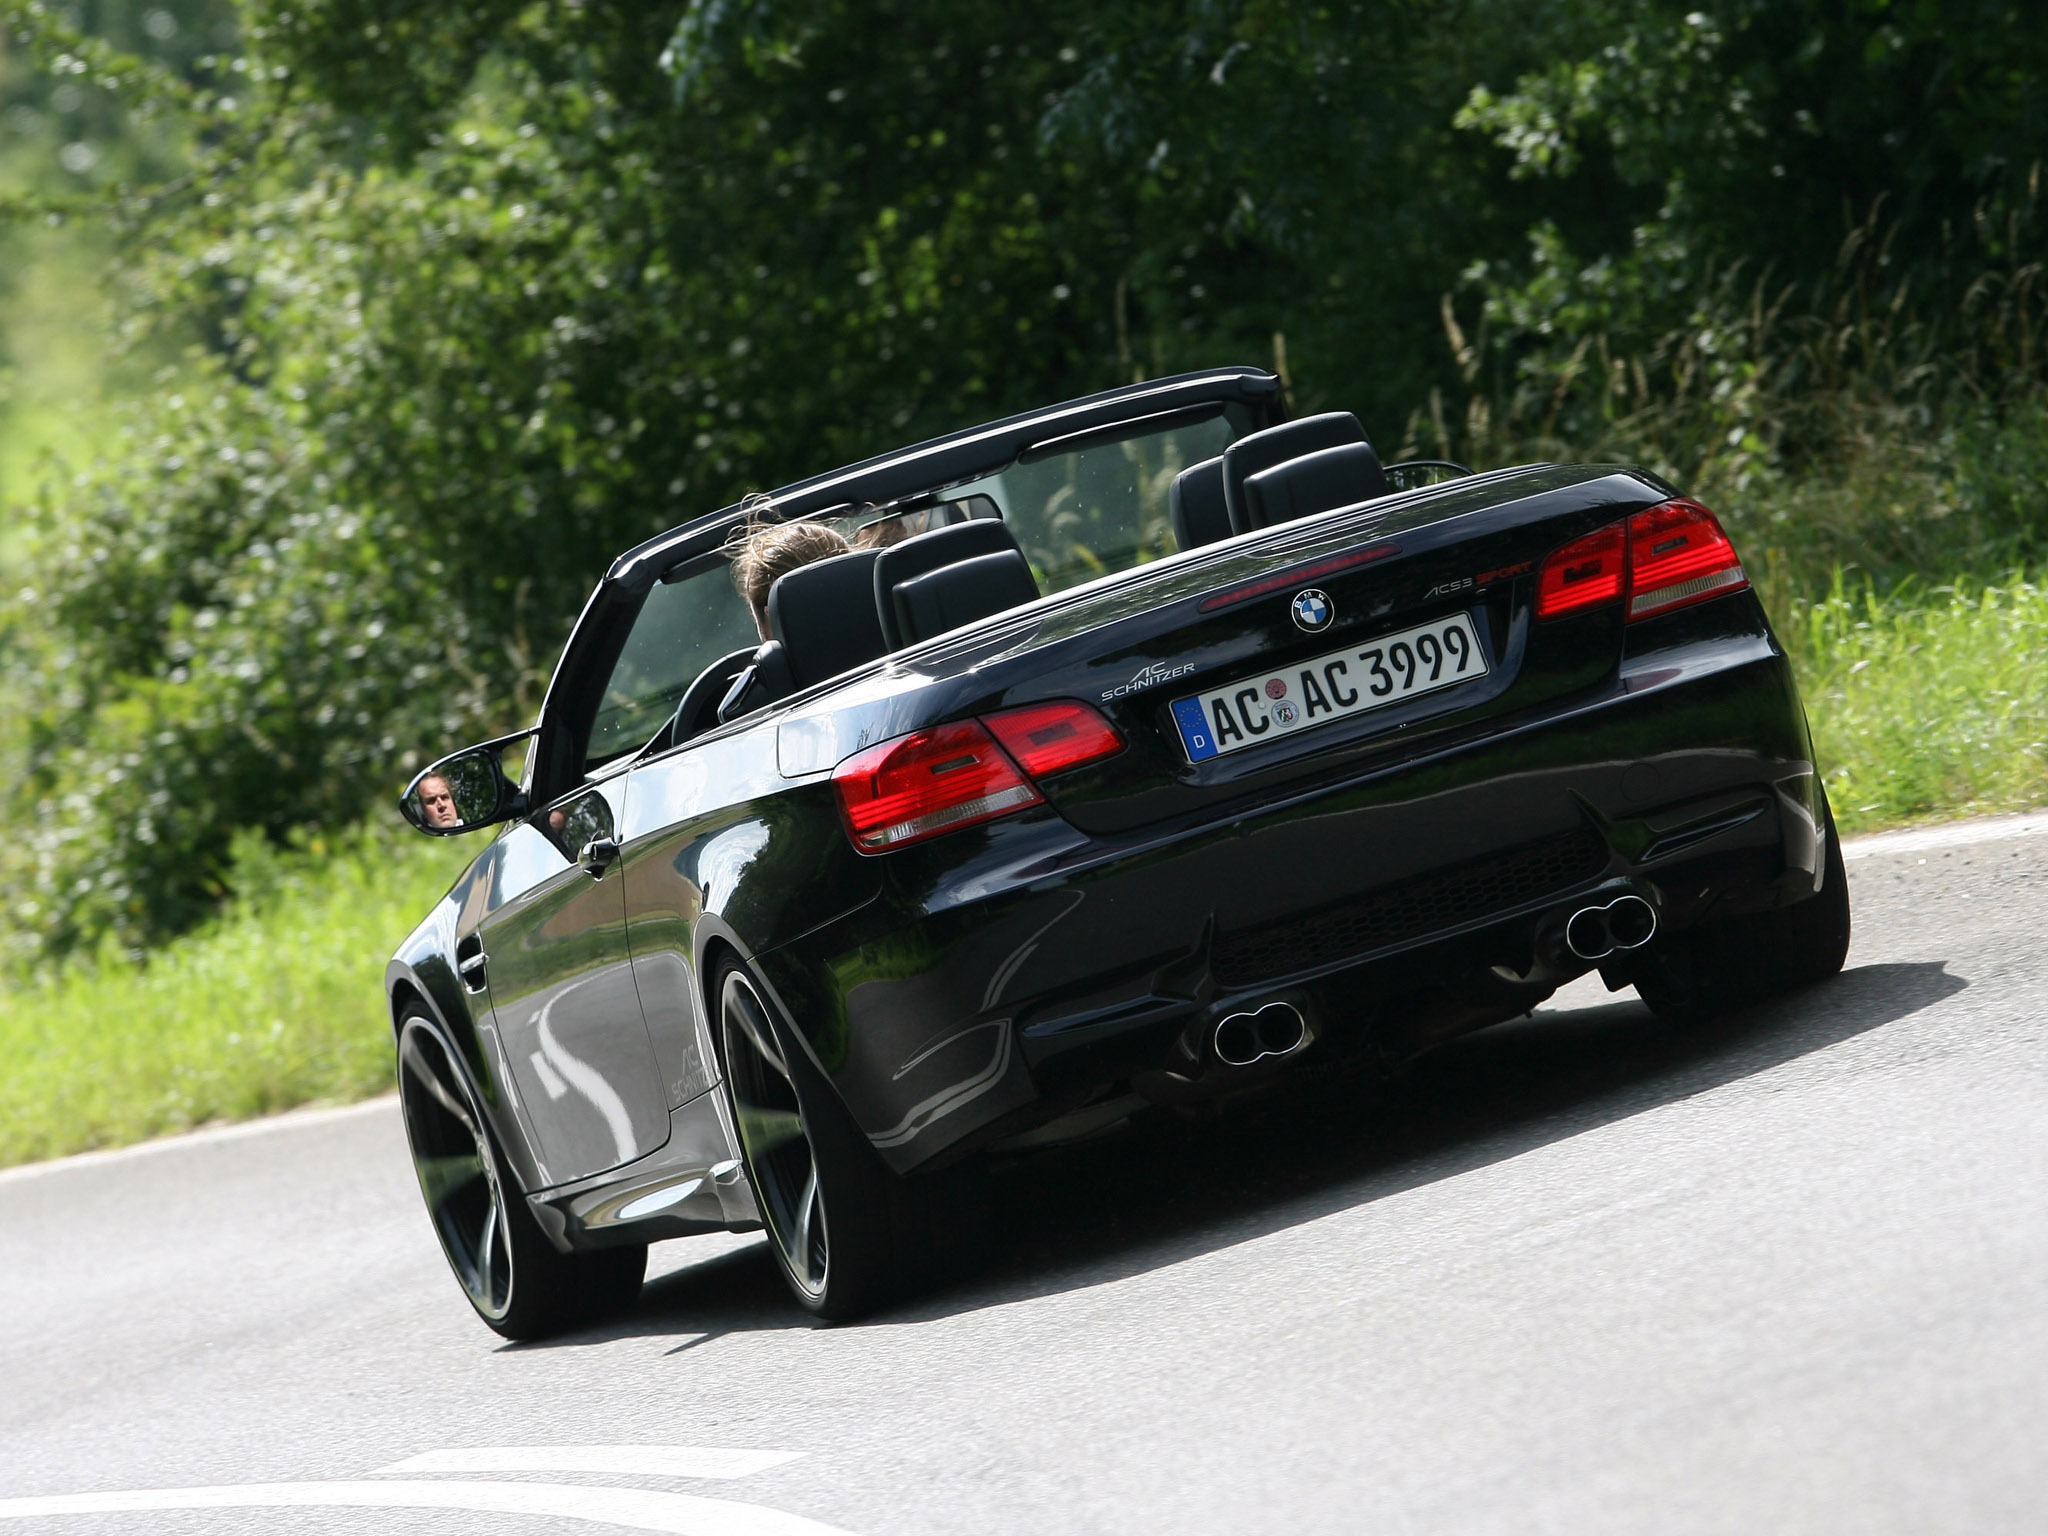 bmw 3 series cabrio (e93) 2008 images